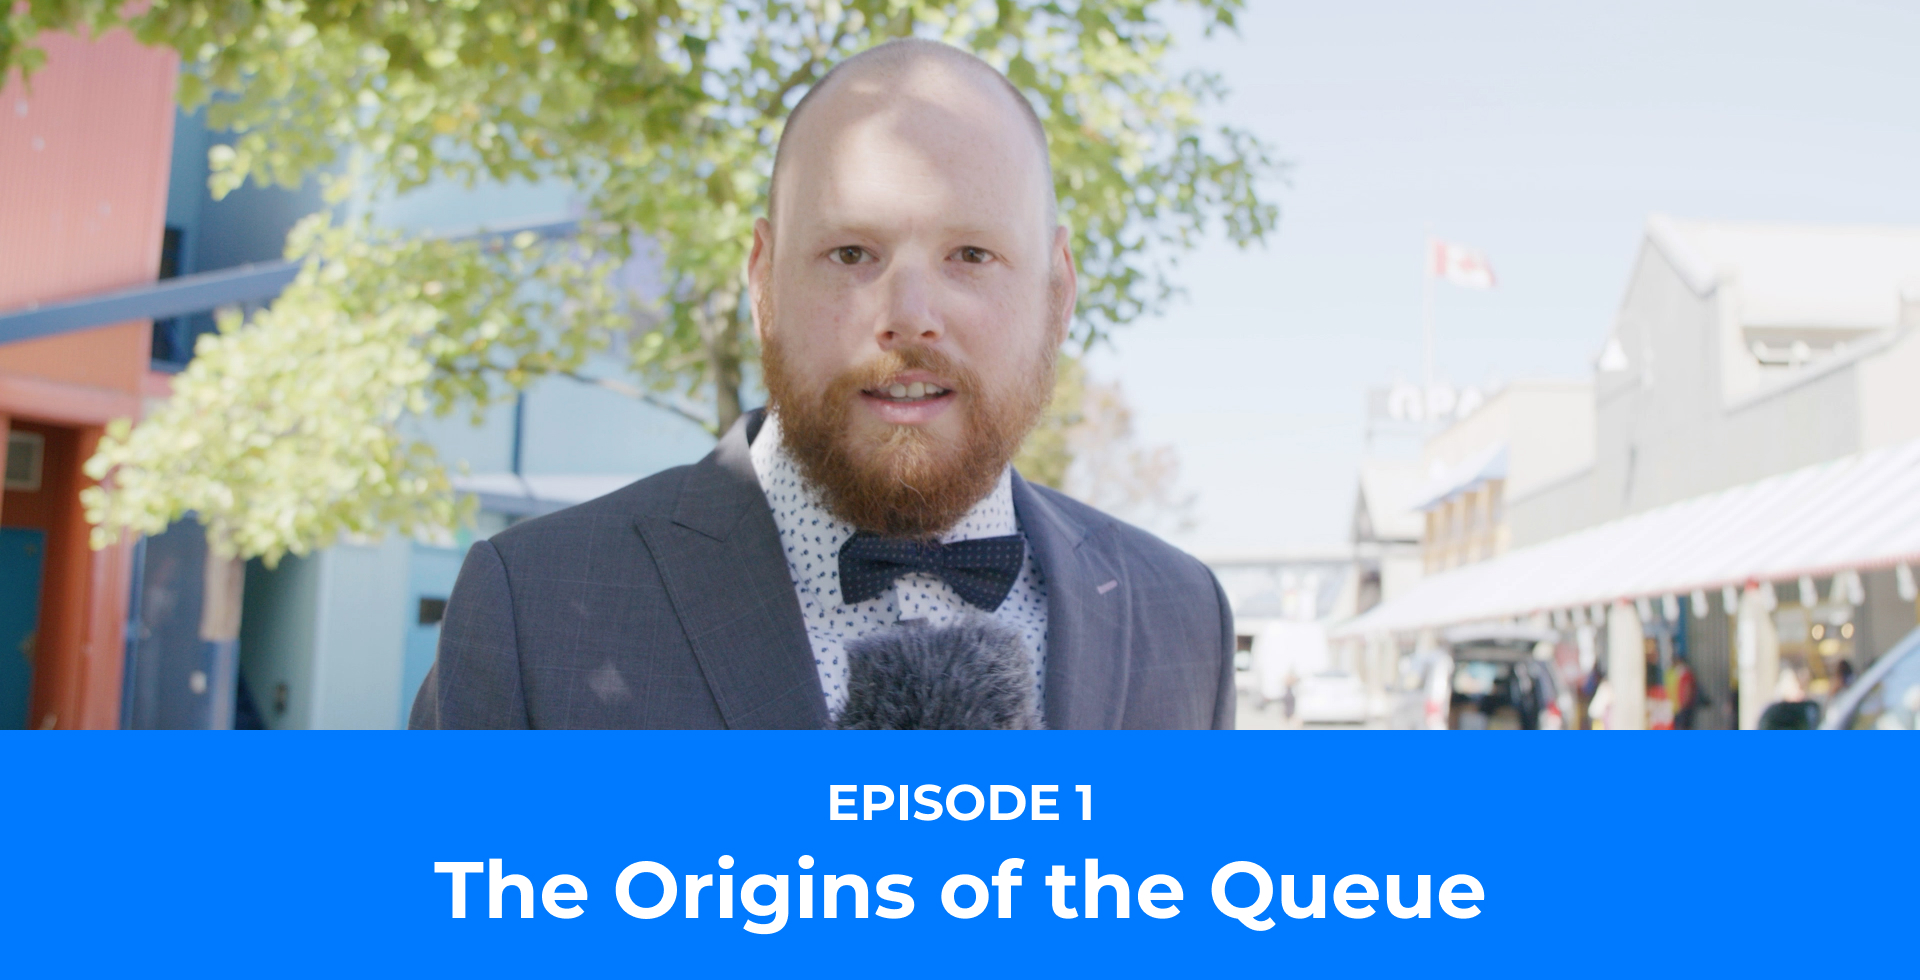 Episode 1 - The Origins of the Queue